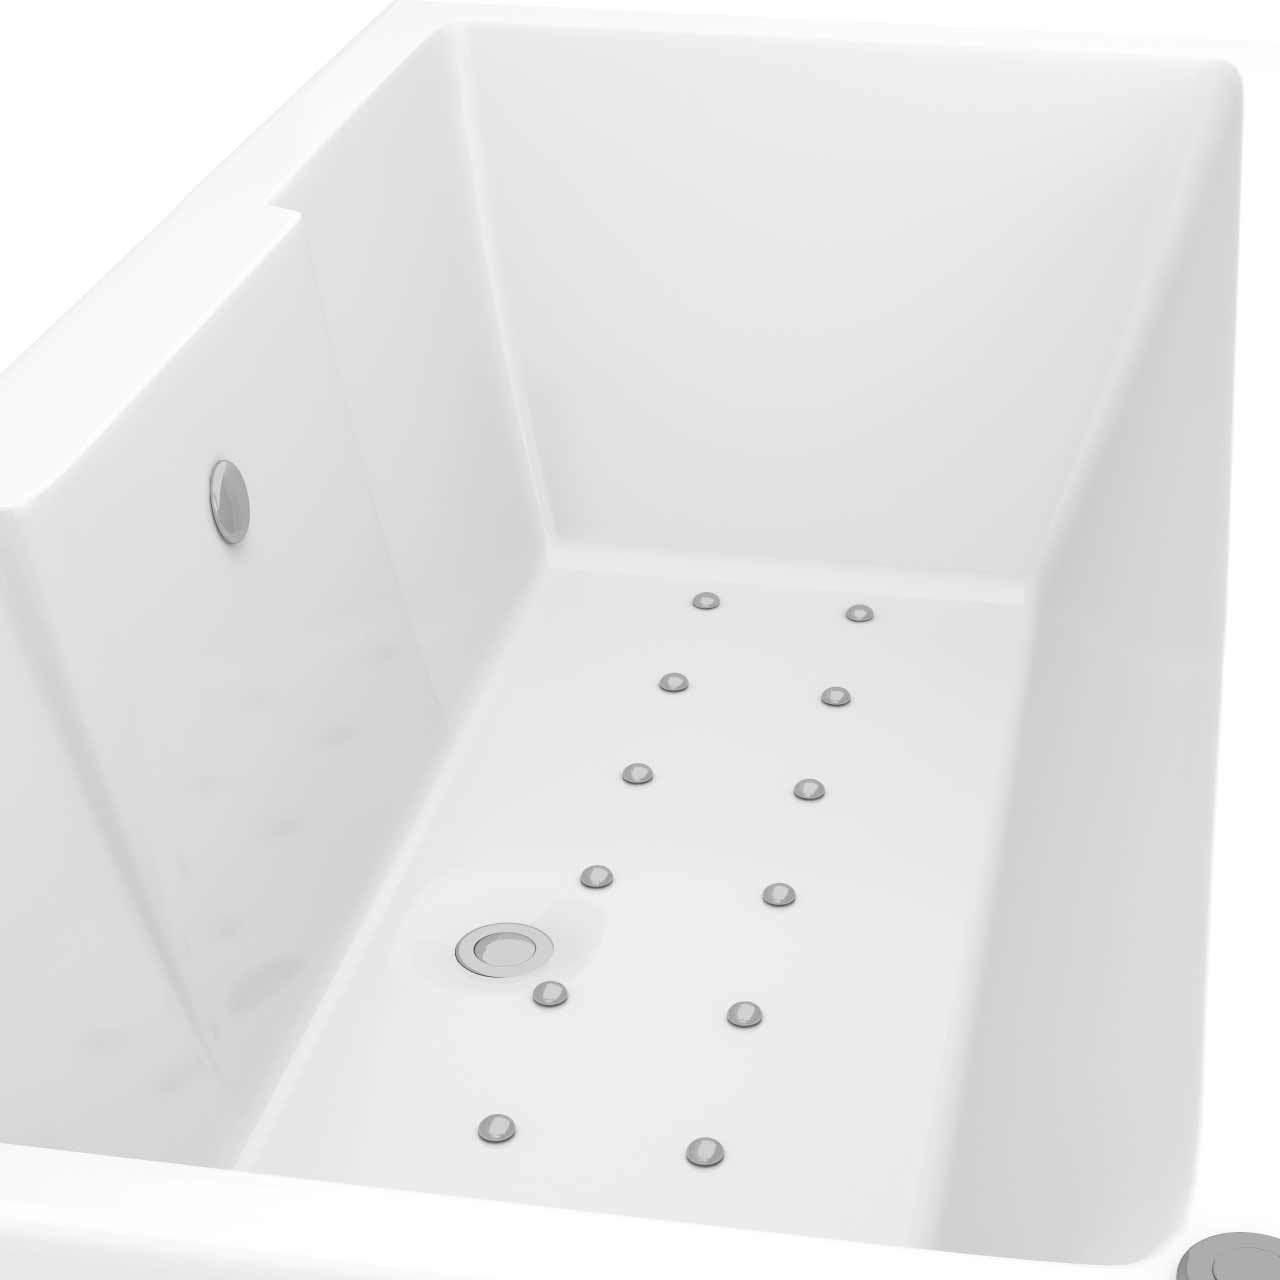 Legend Right Hand 12 Jet Easifit Spa Whirlpool Bath 1500x700mm